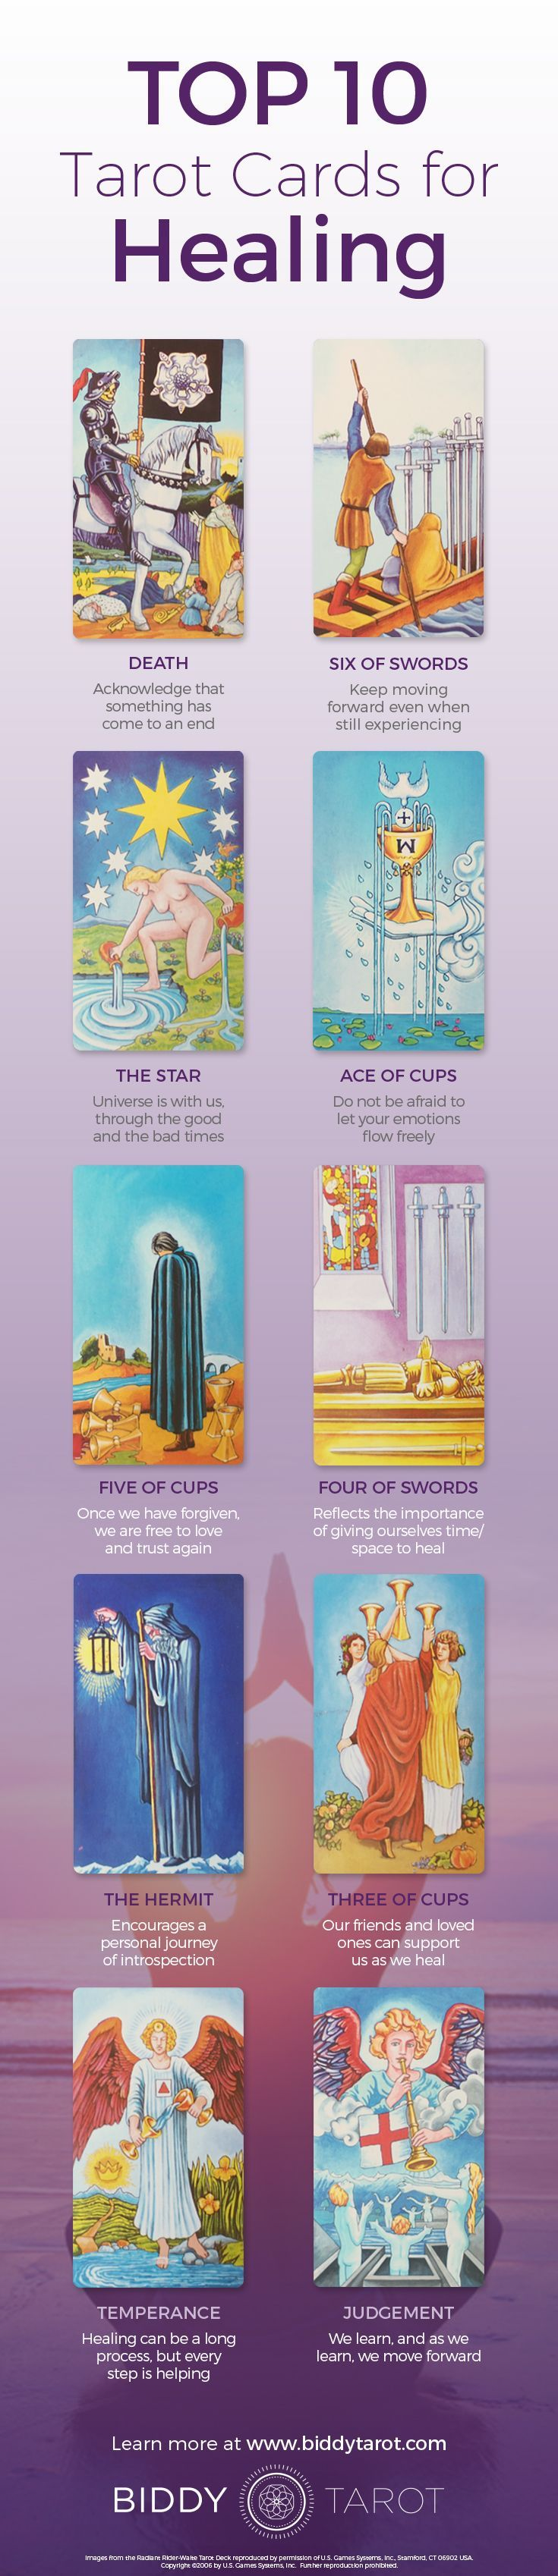 As we navigate our way through life, we invariably encounter difficult experiences that shake us to our core. Over time, though, we #recover through a process of renewal and #healing, as we find the true #blessing in our struggles. Download your free copy of my Top 10 Tarot Cards for love, finances, career, life purpose and so much more at www.biddytarot.co... It's my gift to you!